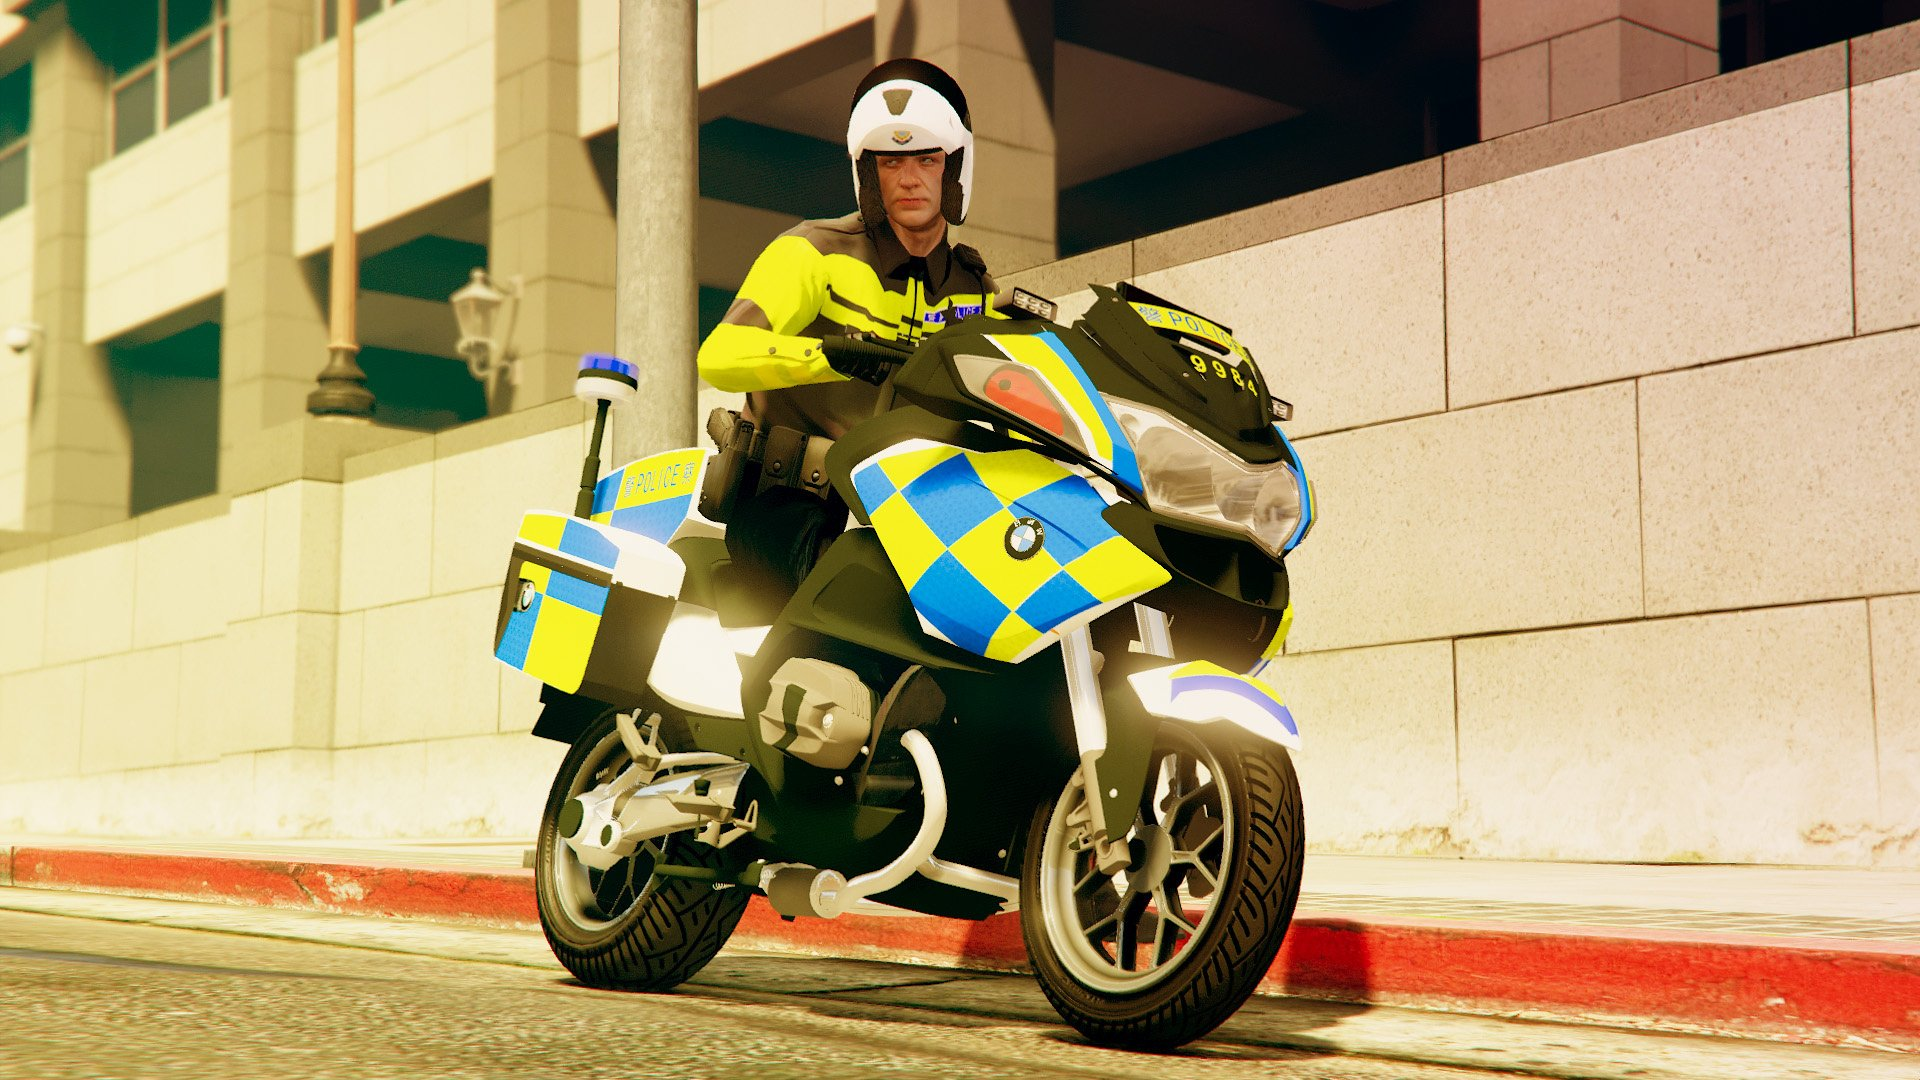 Bmw R1200rt Hong Kong Police Skin Gta5 Mods Com